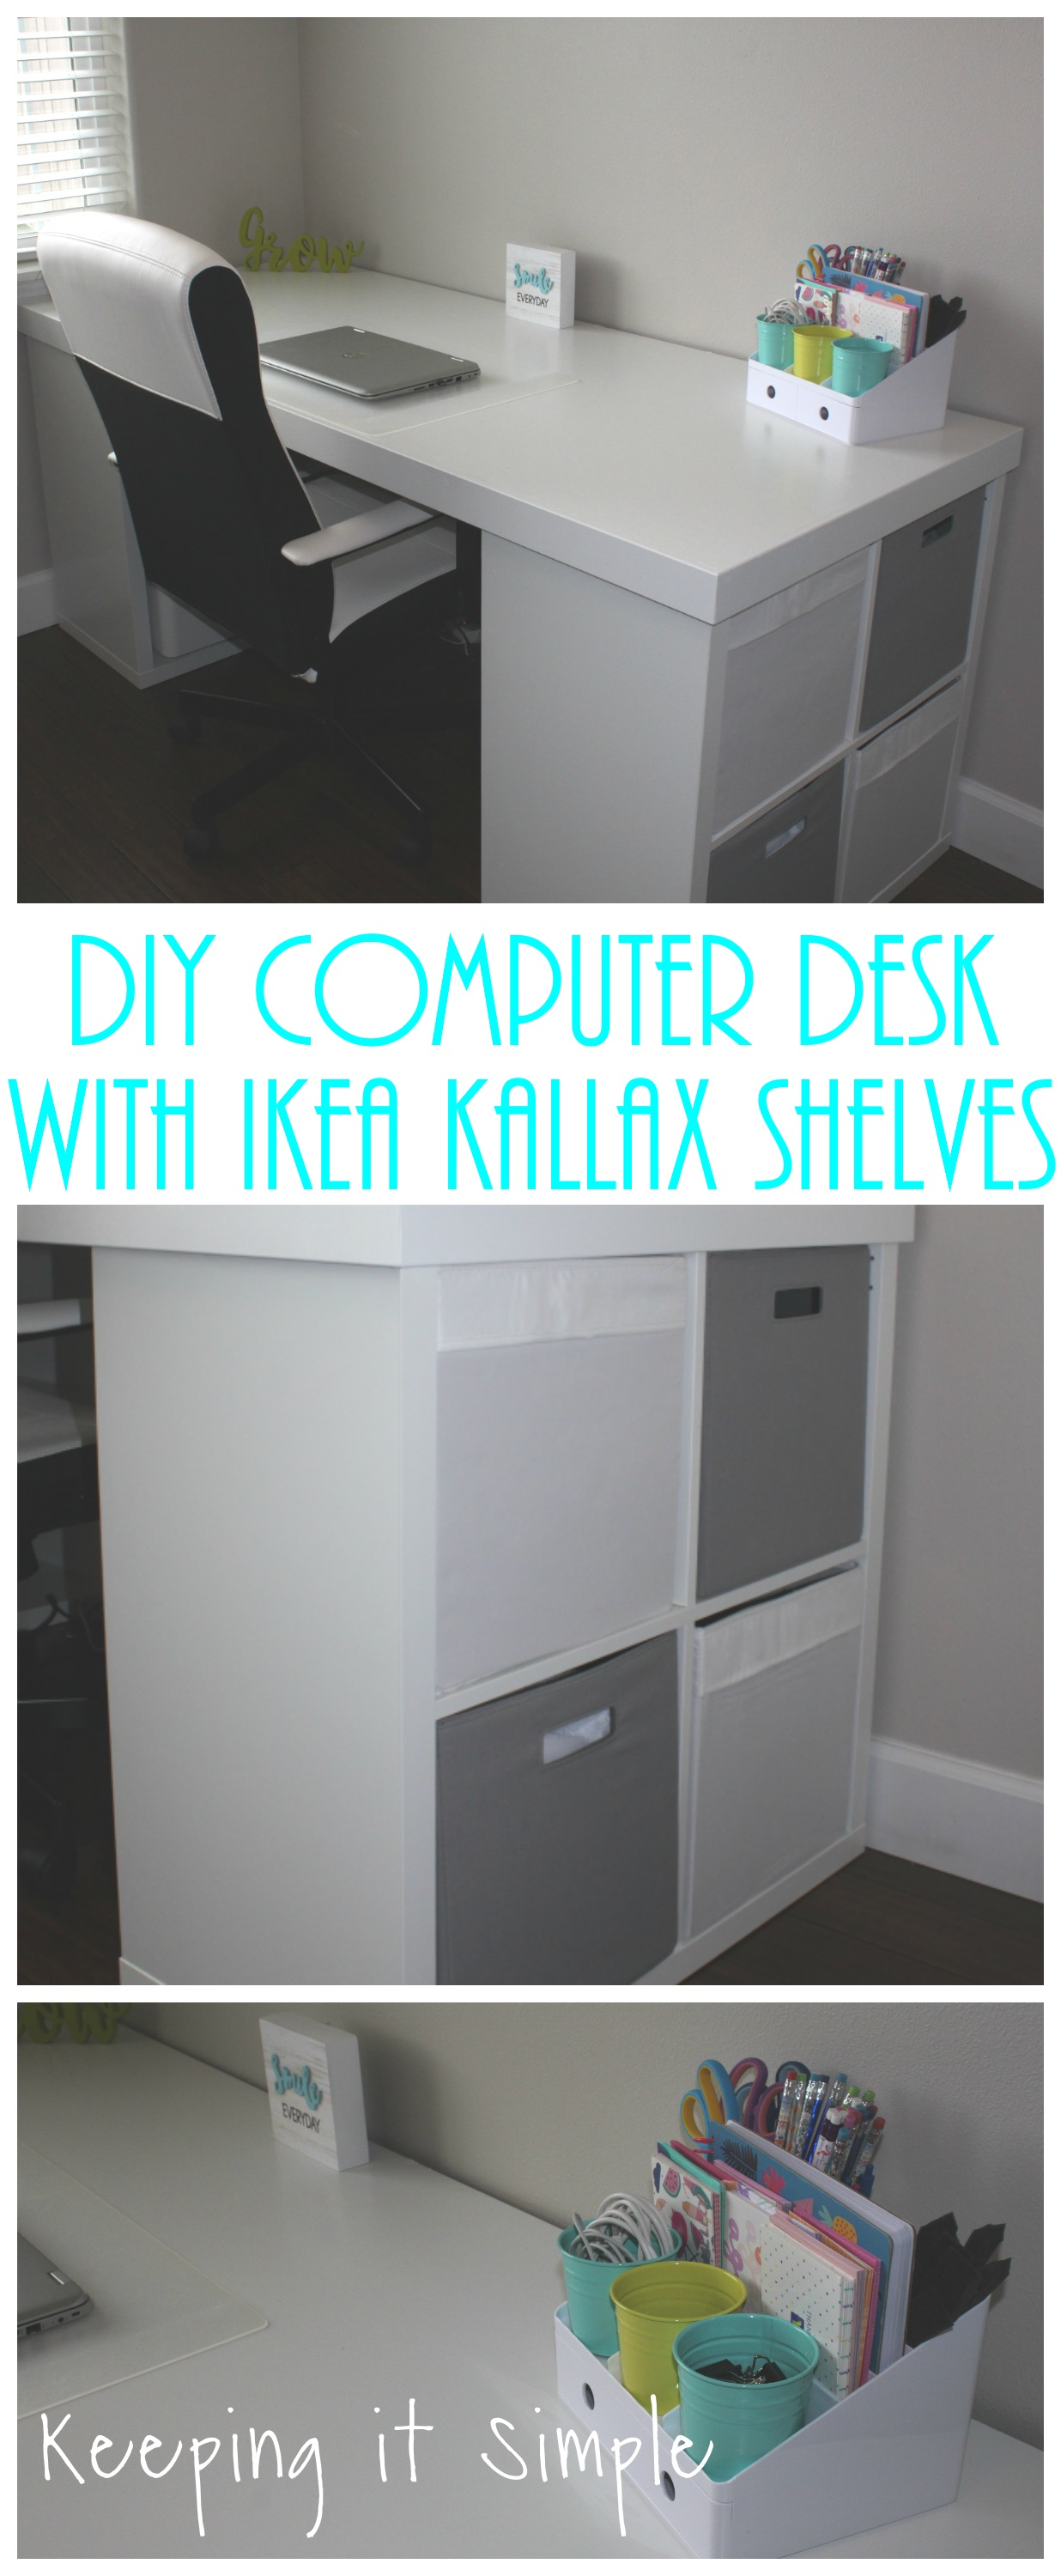 Ikea Kallax Ikea Hack Diy Computer Desk With Kallax Shelves Keeping It Simple